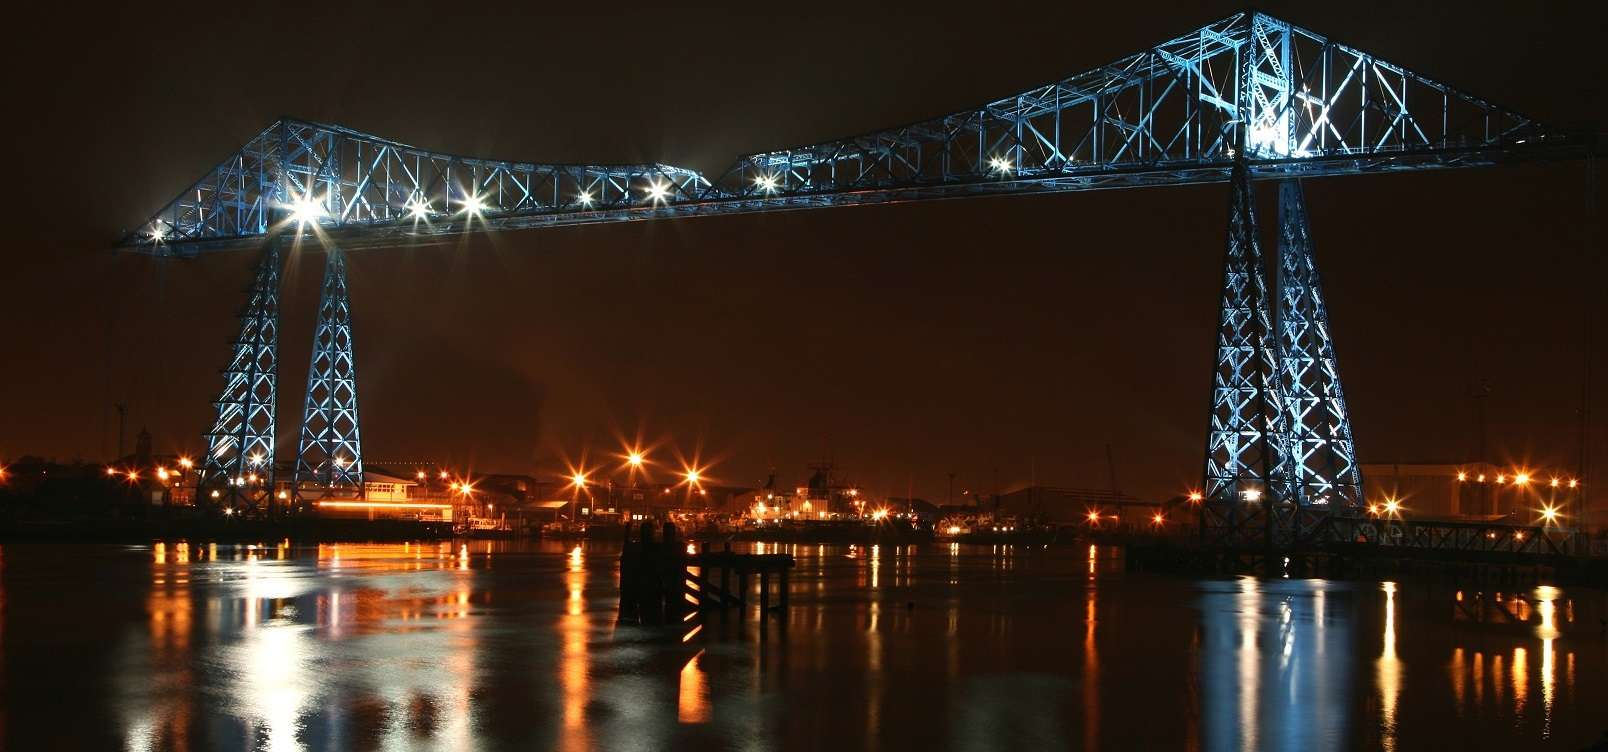 Teesside Transporter Bridge